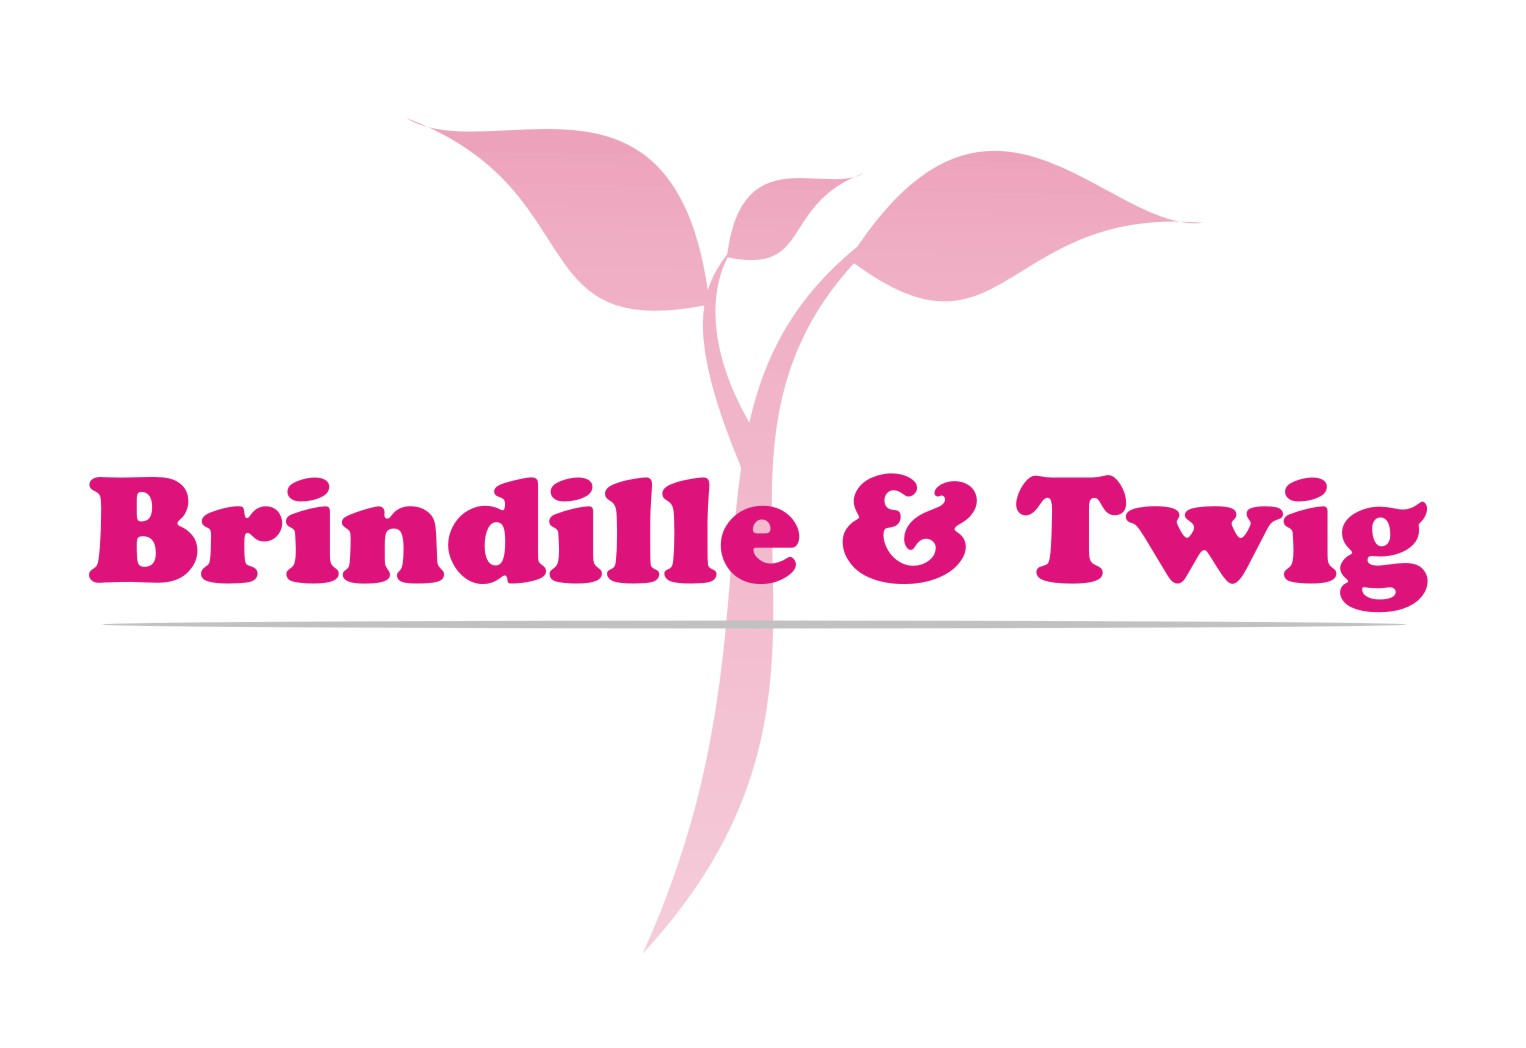 Logo Design by Gaber Barabaraberebere - Entry No. 10 in the Logo Design Contest Logo Design for Brindille & Twig.